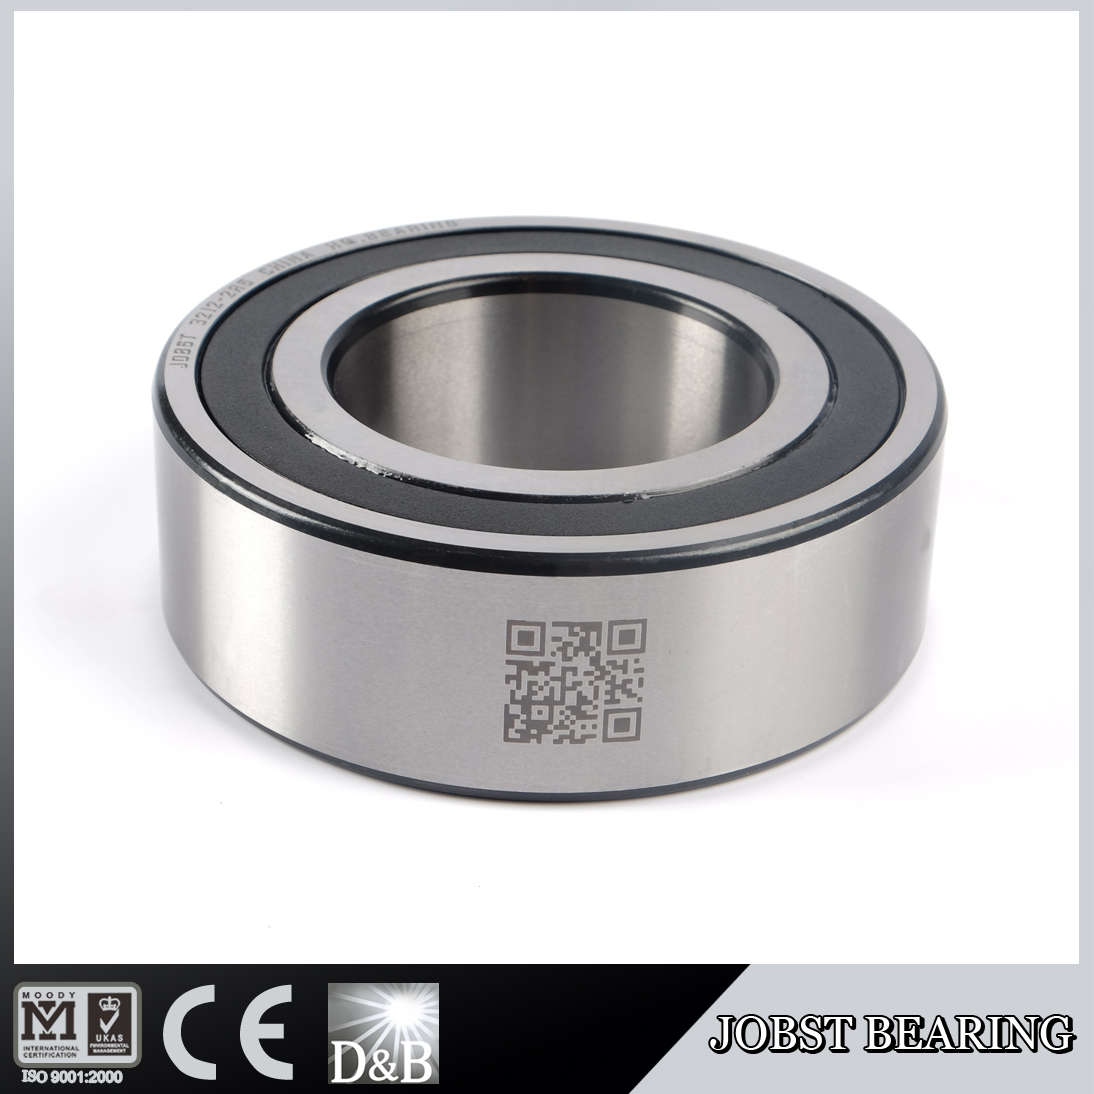 IKO RNA4920 | Leader Bearing - …